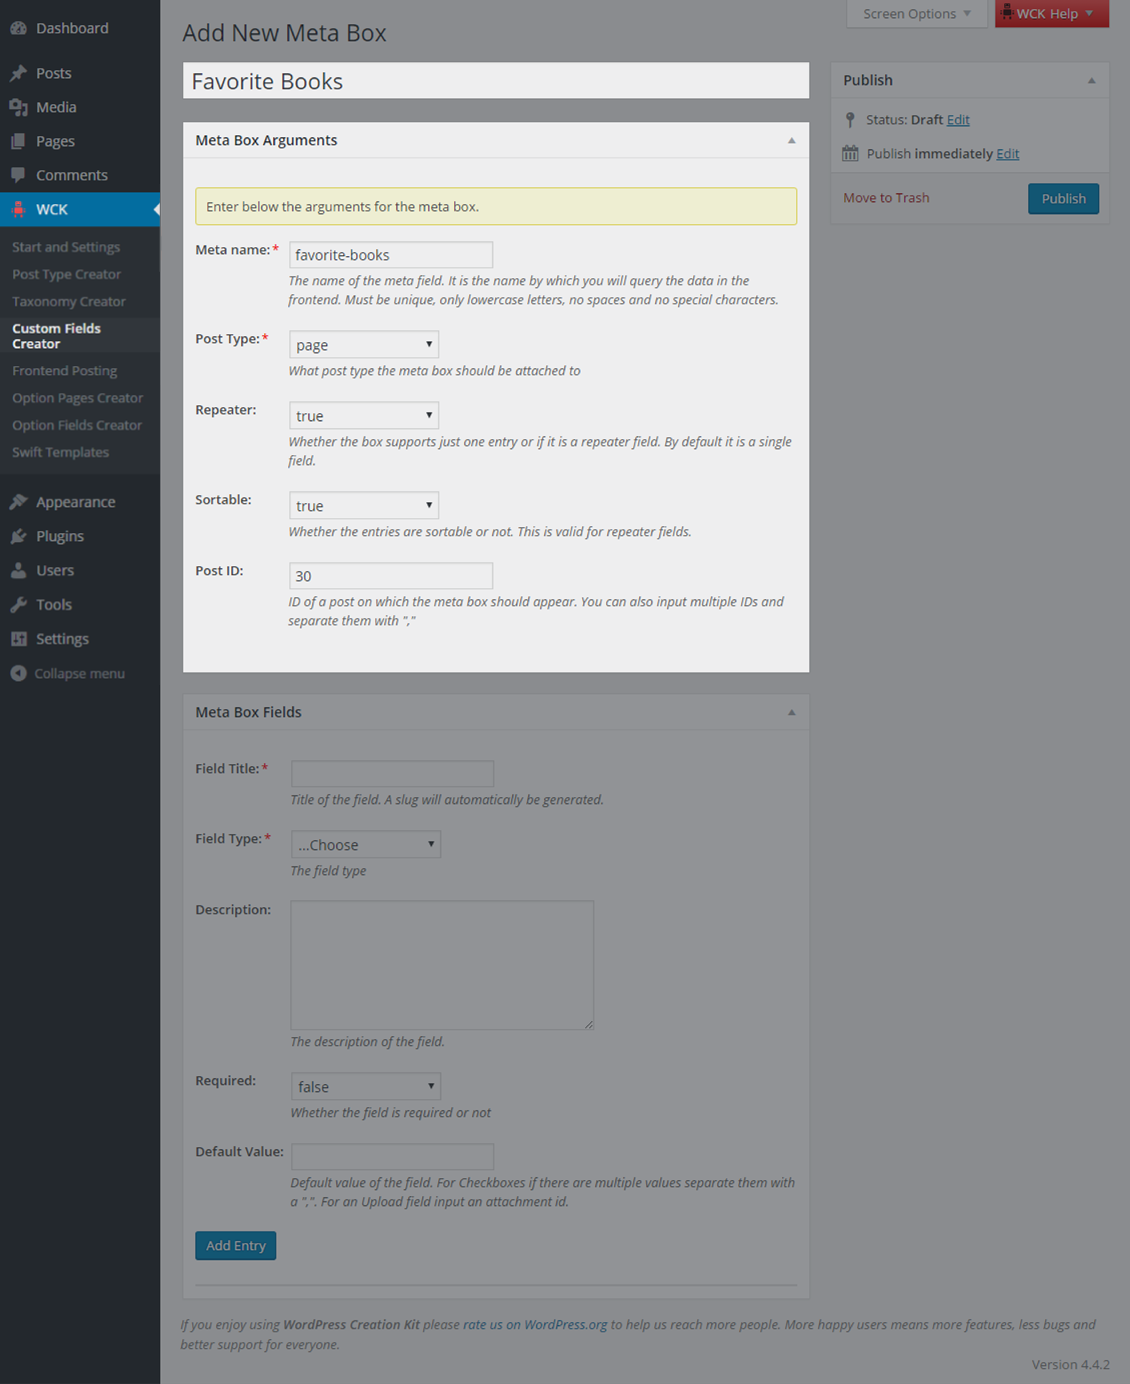 WordPress Creation Kit - Custom Fields Creator feature